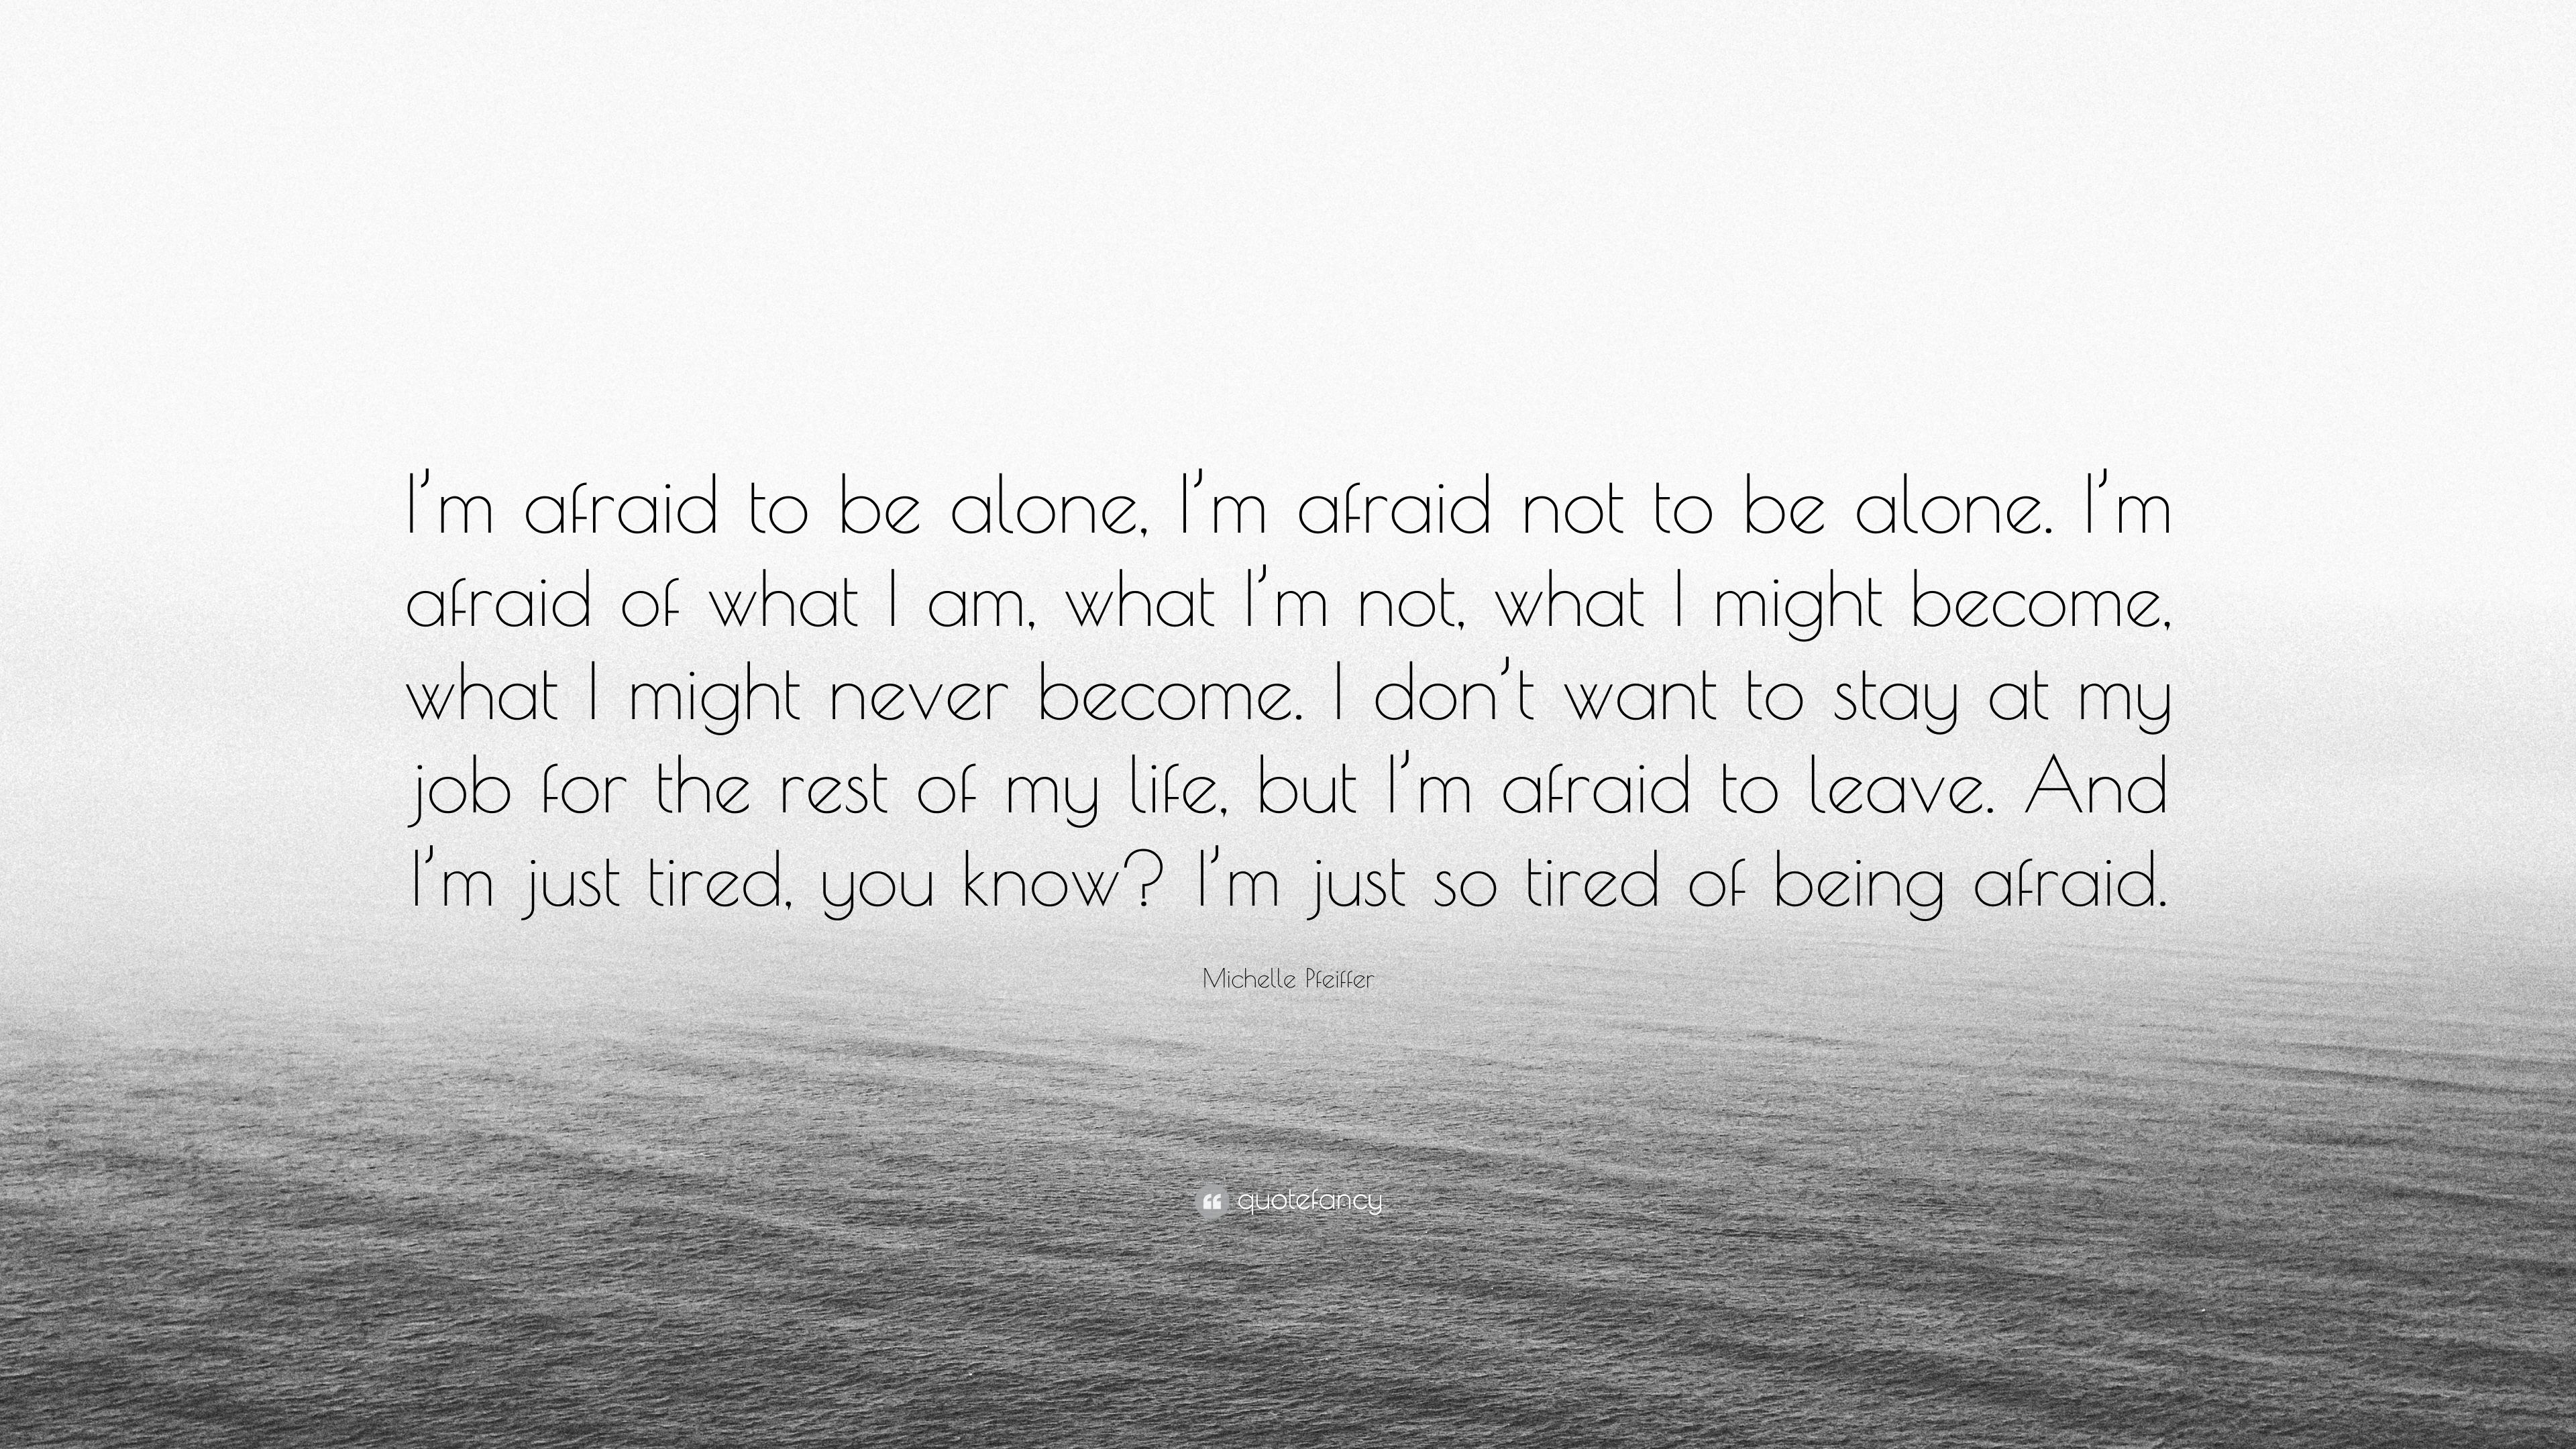 Why am i scared to be alone